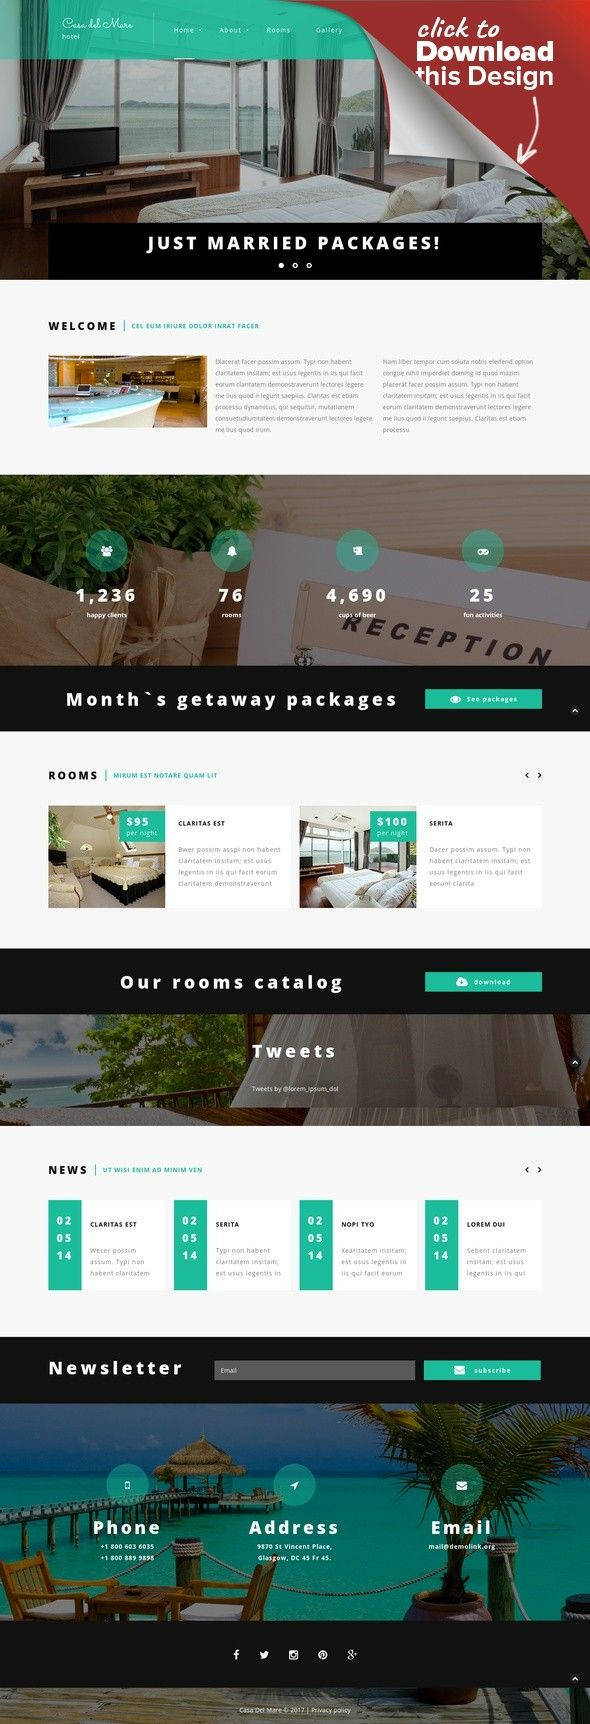 Hotel Suite Joomla Template CMS & Blog Templates, Joomla Templates, Business & Services, Hotels Templates This hotel Joomla theme features a rather capacious layout accommodating multiple elements in a compact manner. Visitors can easily look through your vacant rooms in a full-widt...